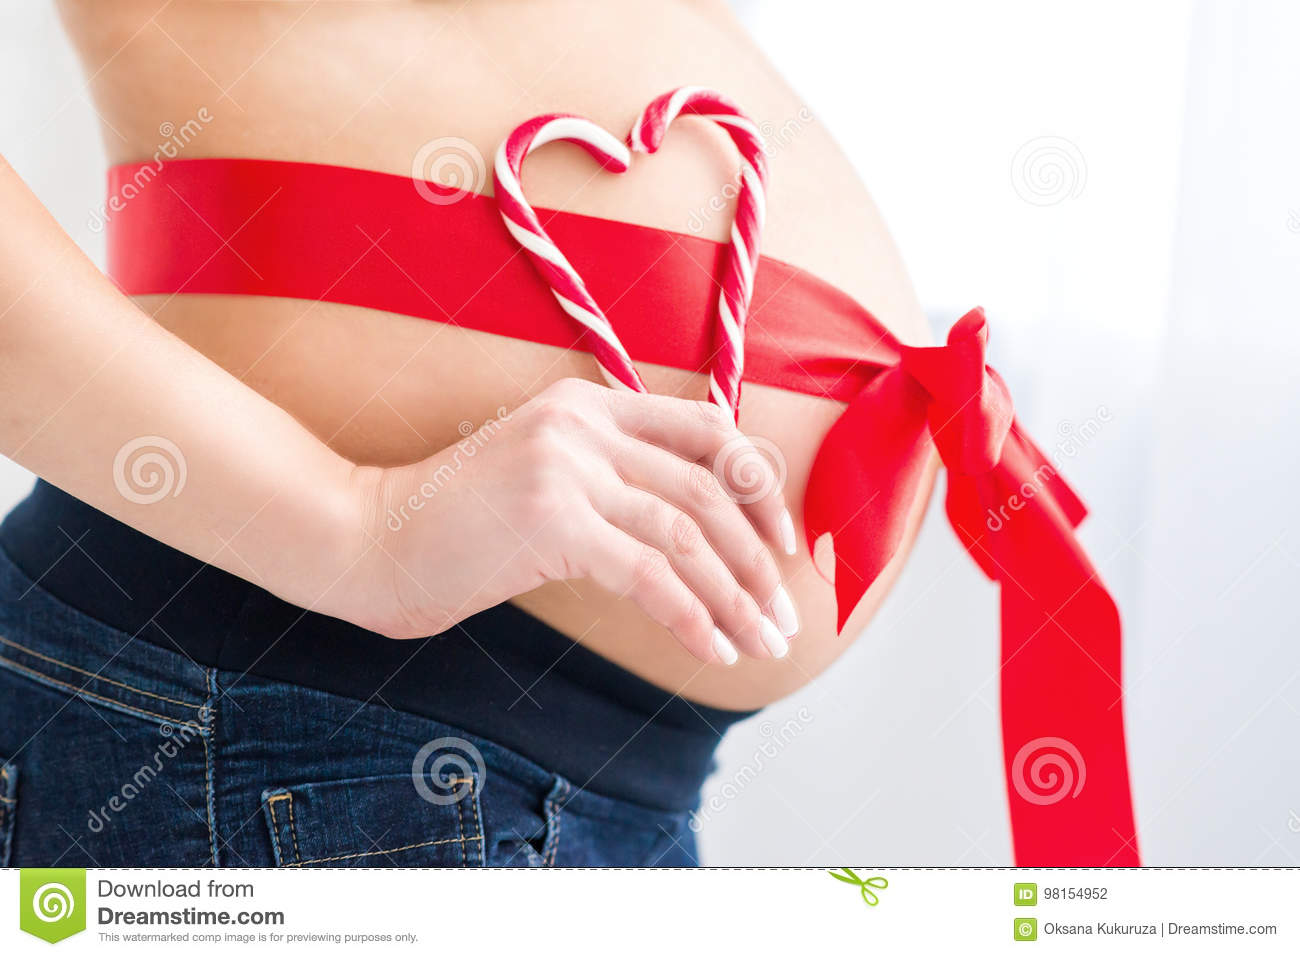 Pregnant Belly With Red Heart Stock Photo - Image of ...